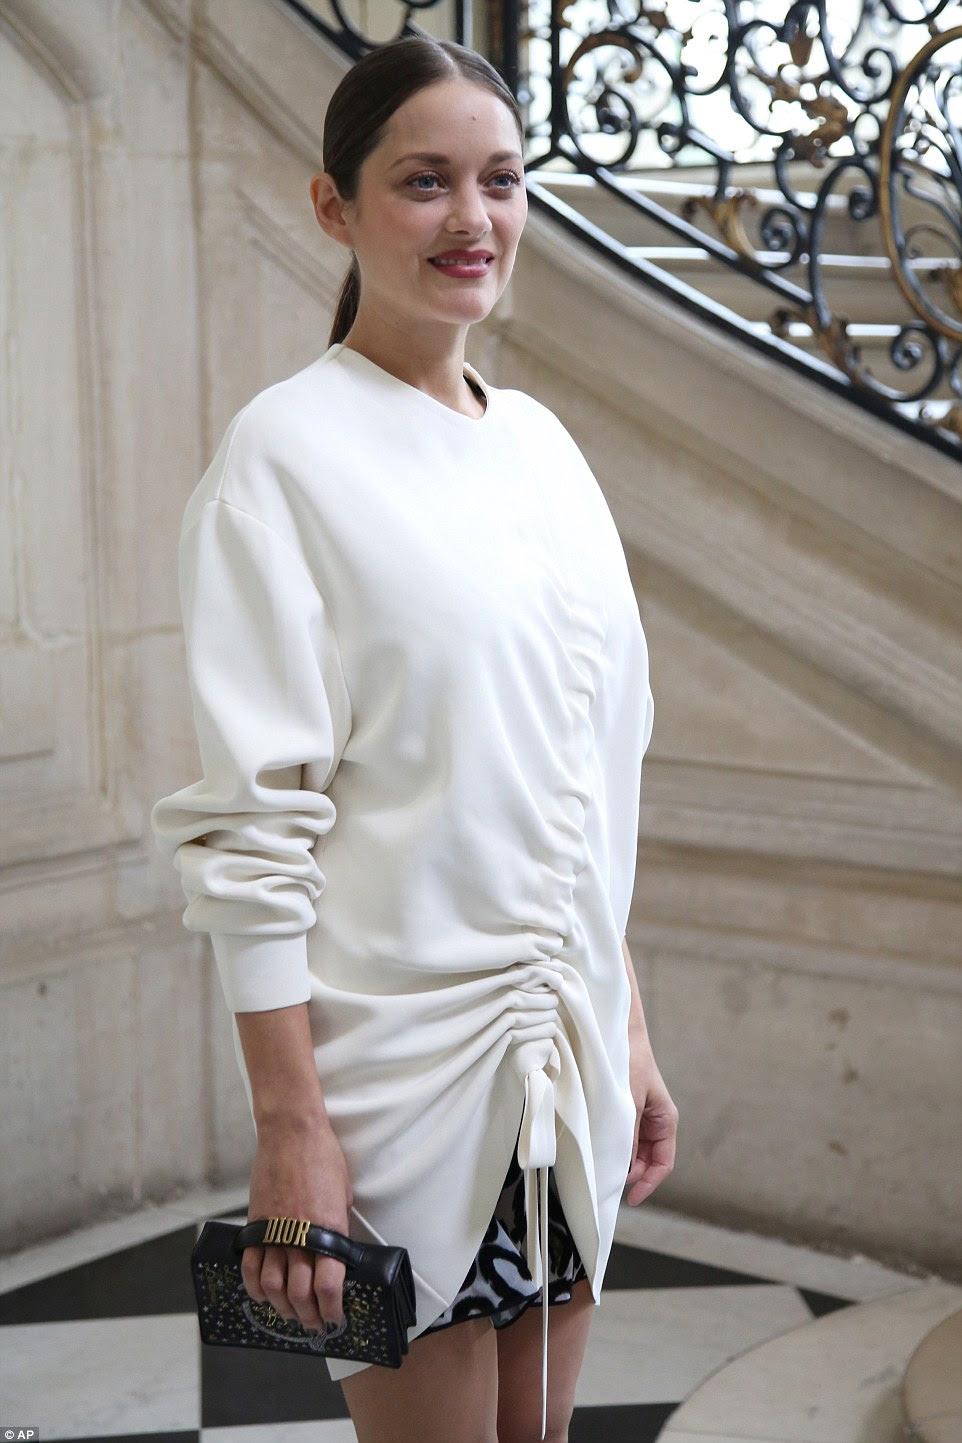 Stunning: She arrived in a stunning white top, which barely showed a hint of her baby bump